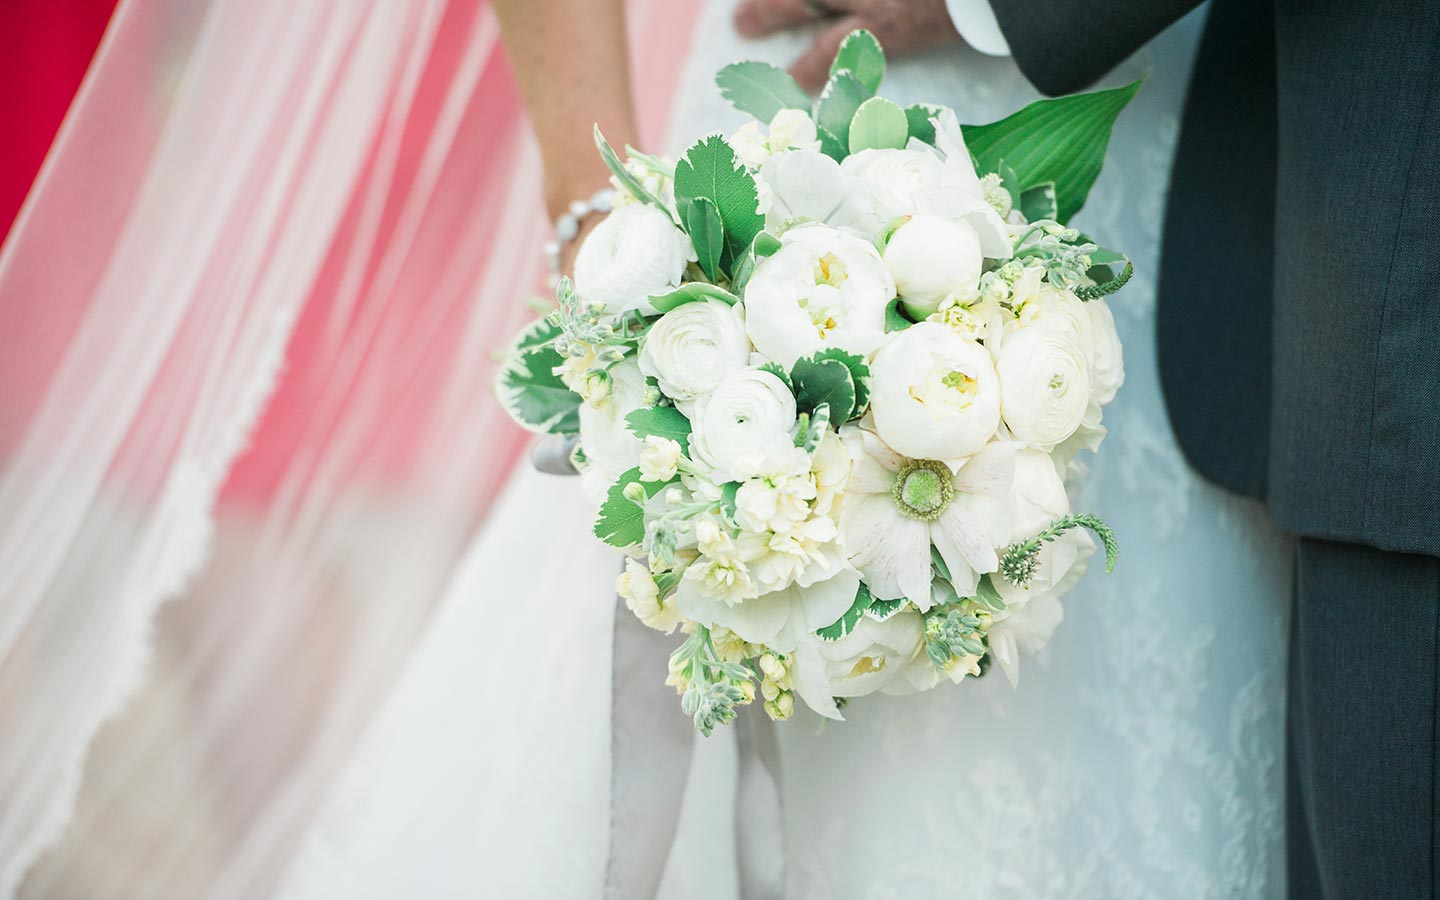 North Carolina wedding venues - flower arrangement